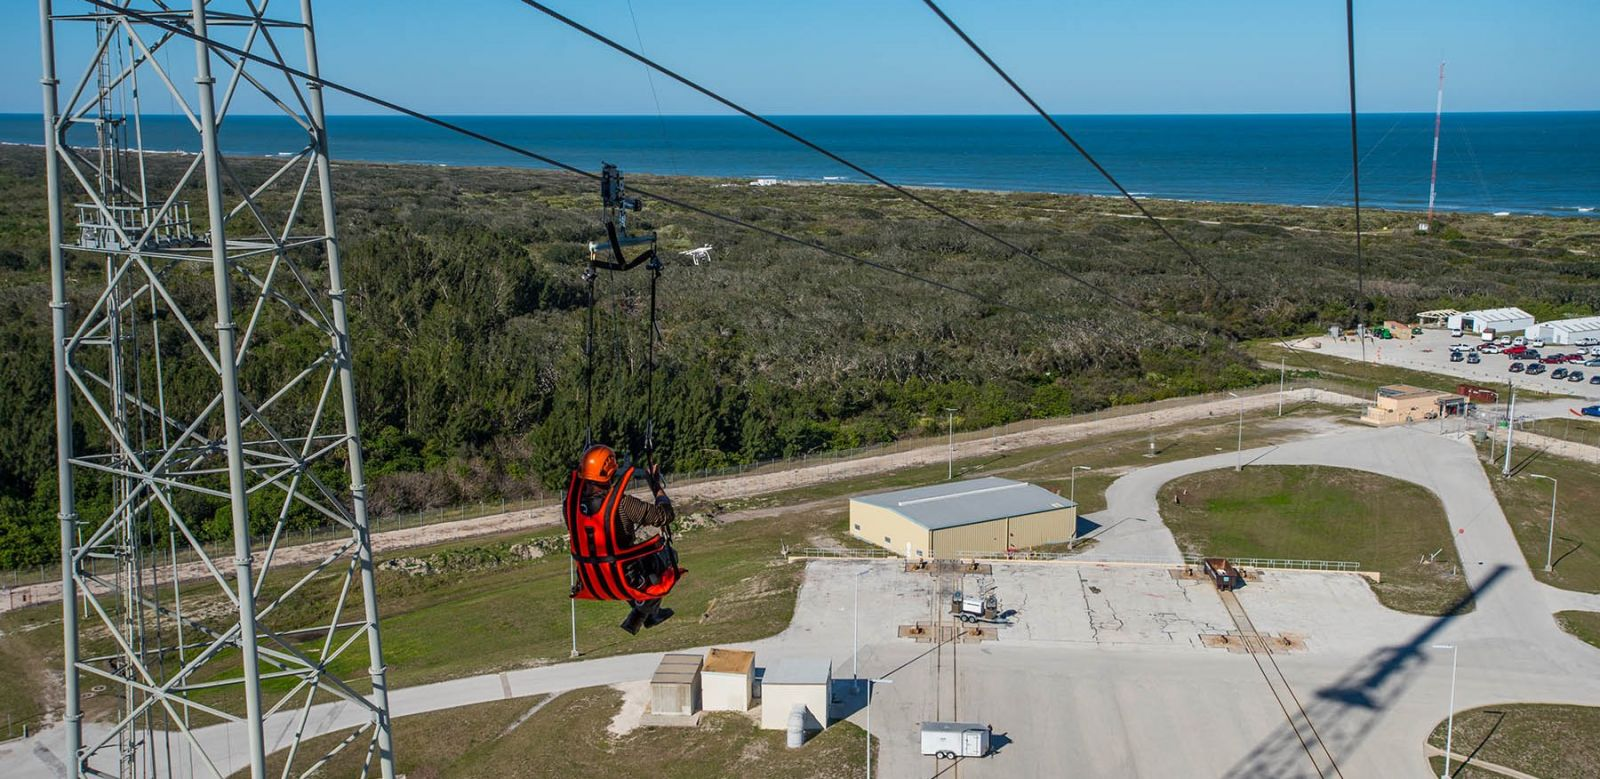 ULA has completed testing of its Emergency Egress System at Cape Canaveral's Space Launch Complex 41 in Florida. Photo Credit: ULA